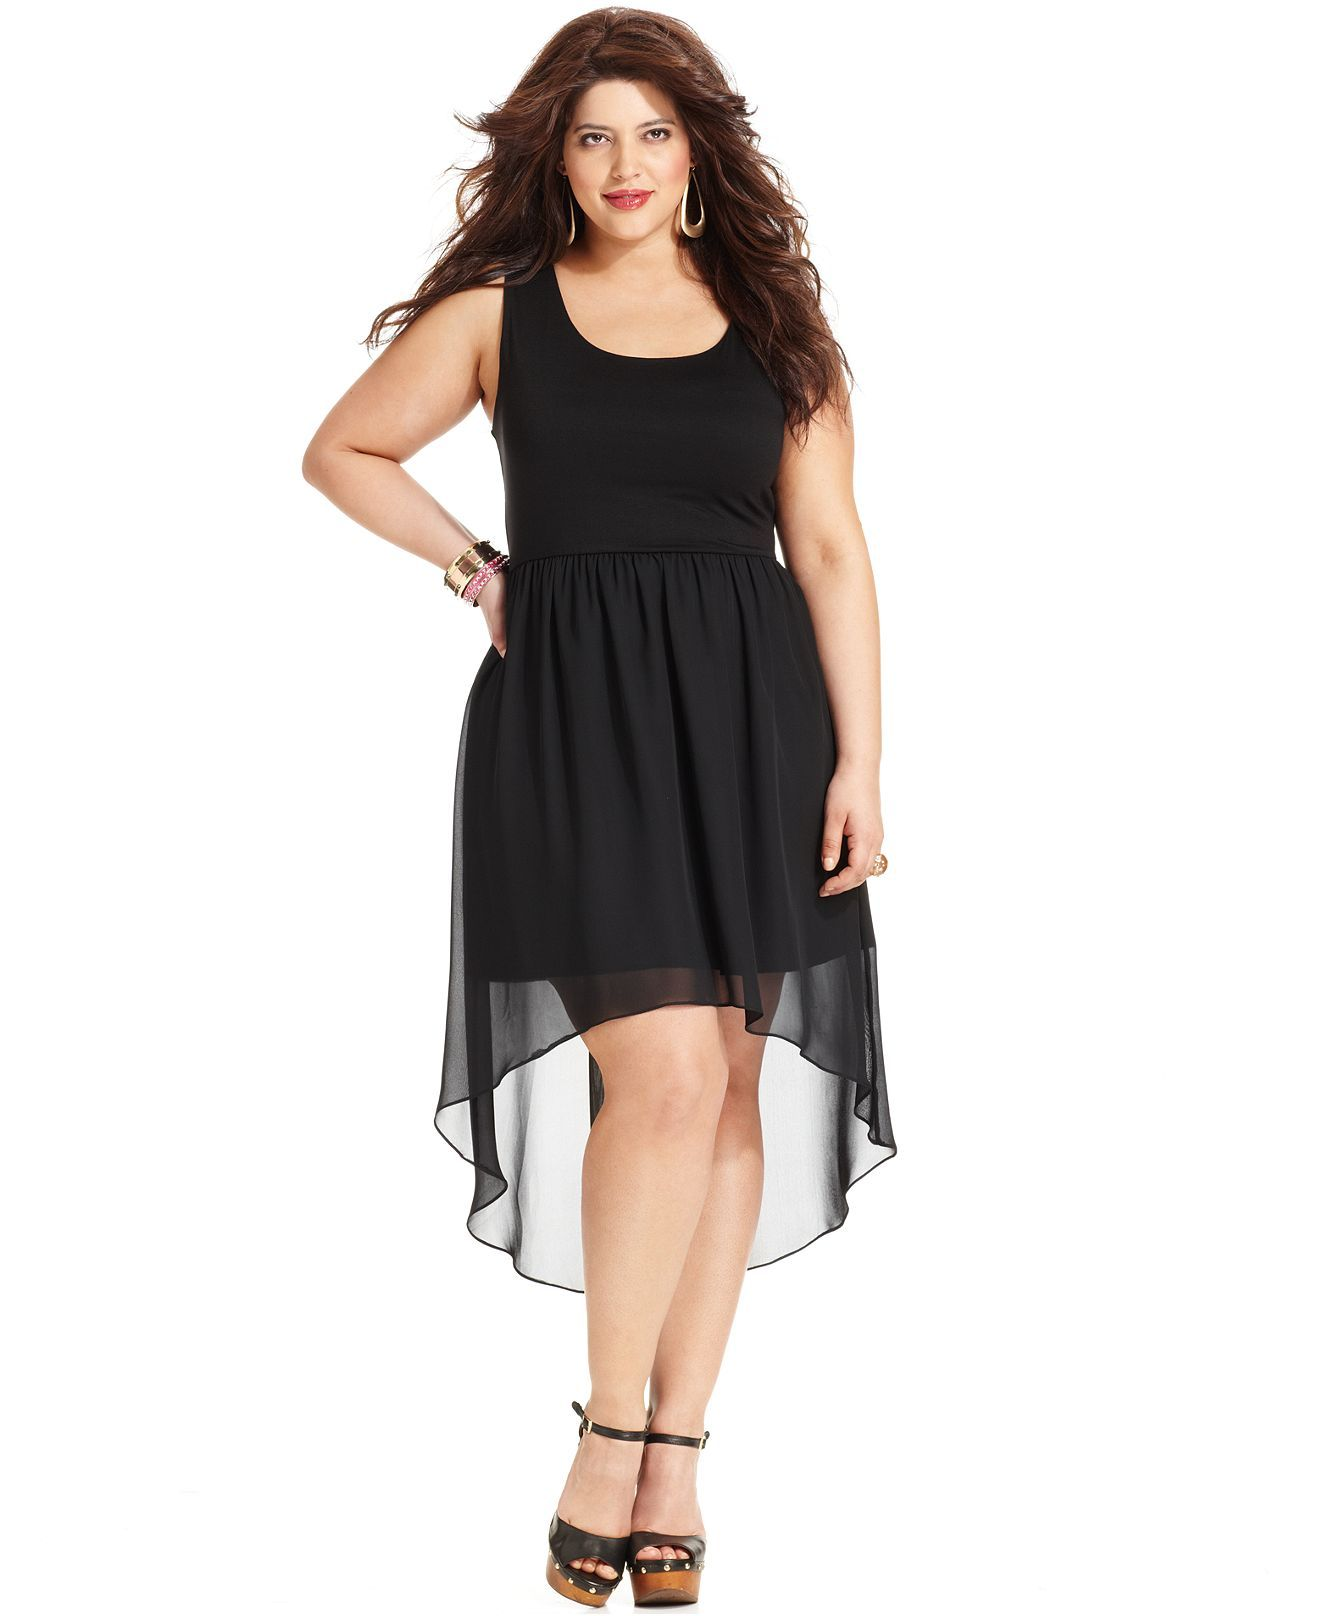 soprano plus size dress, sleeveless tank high-low-hem - plus size